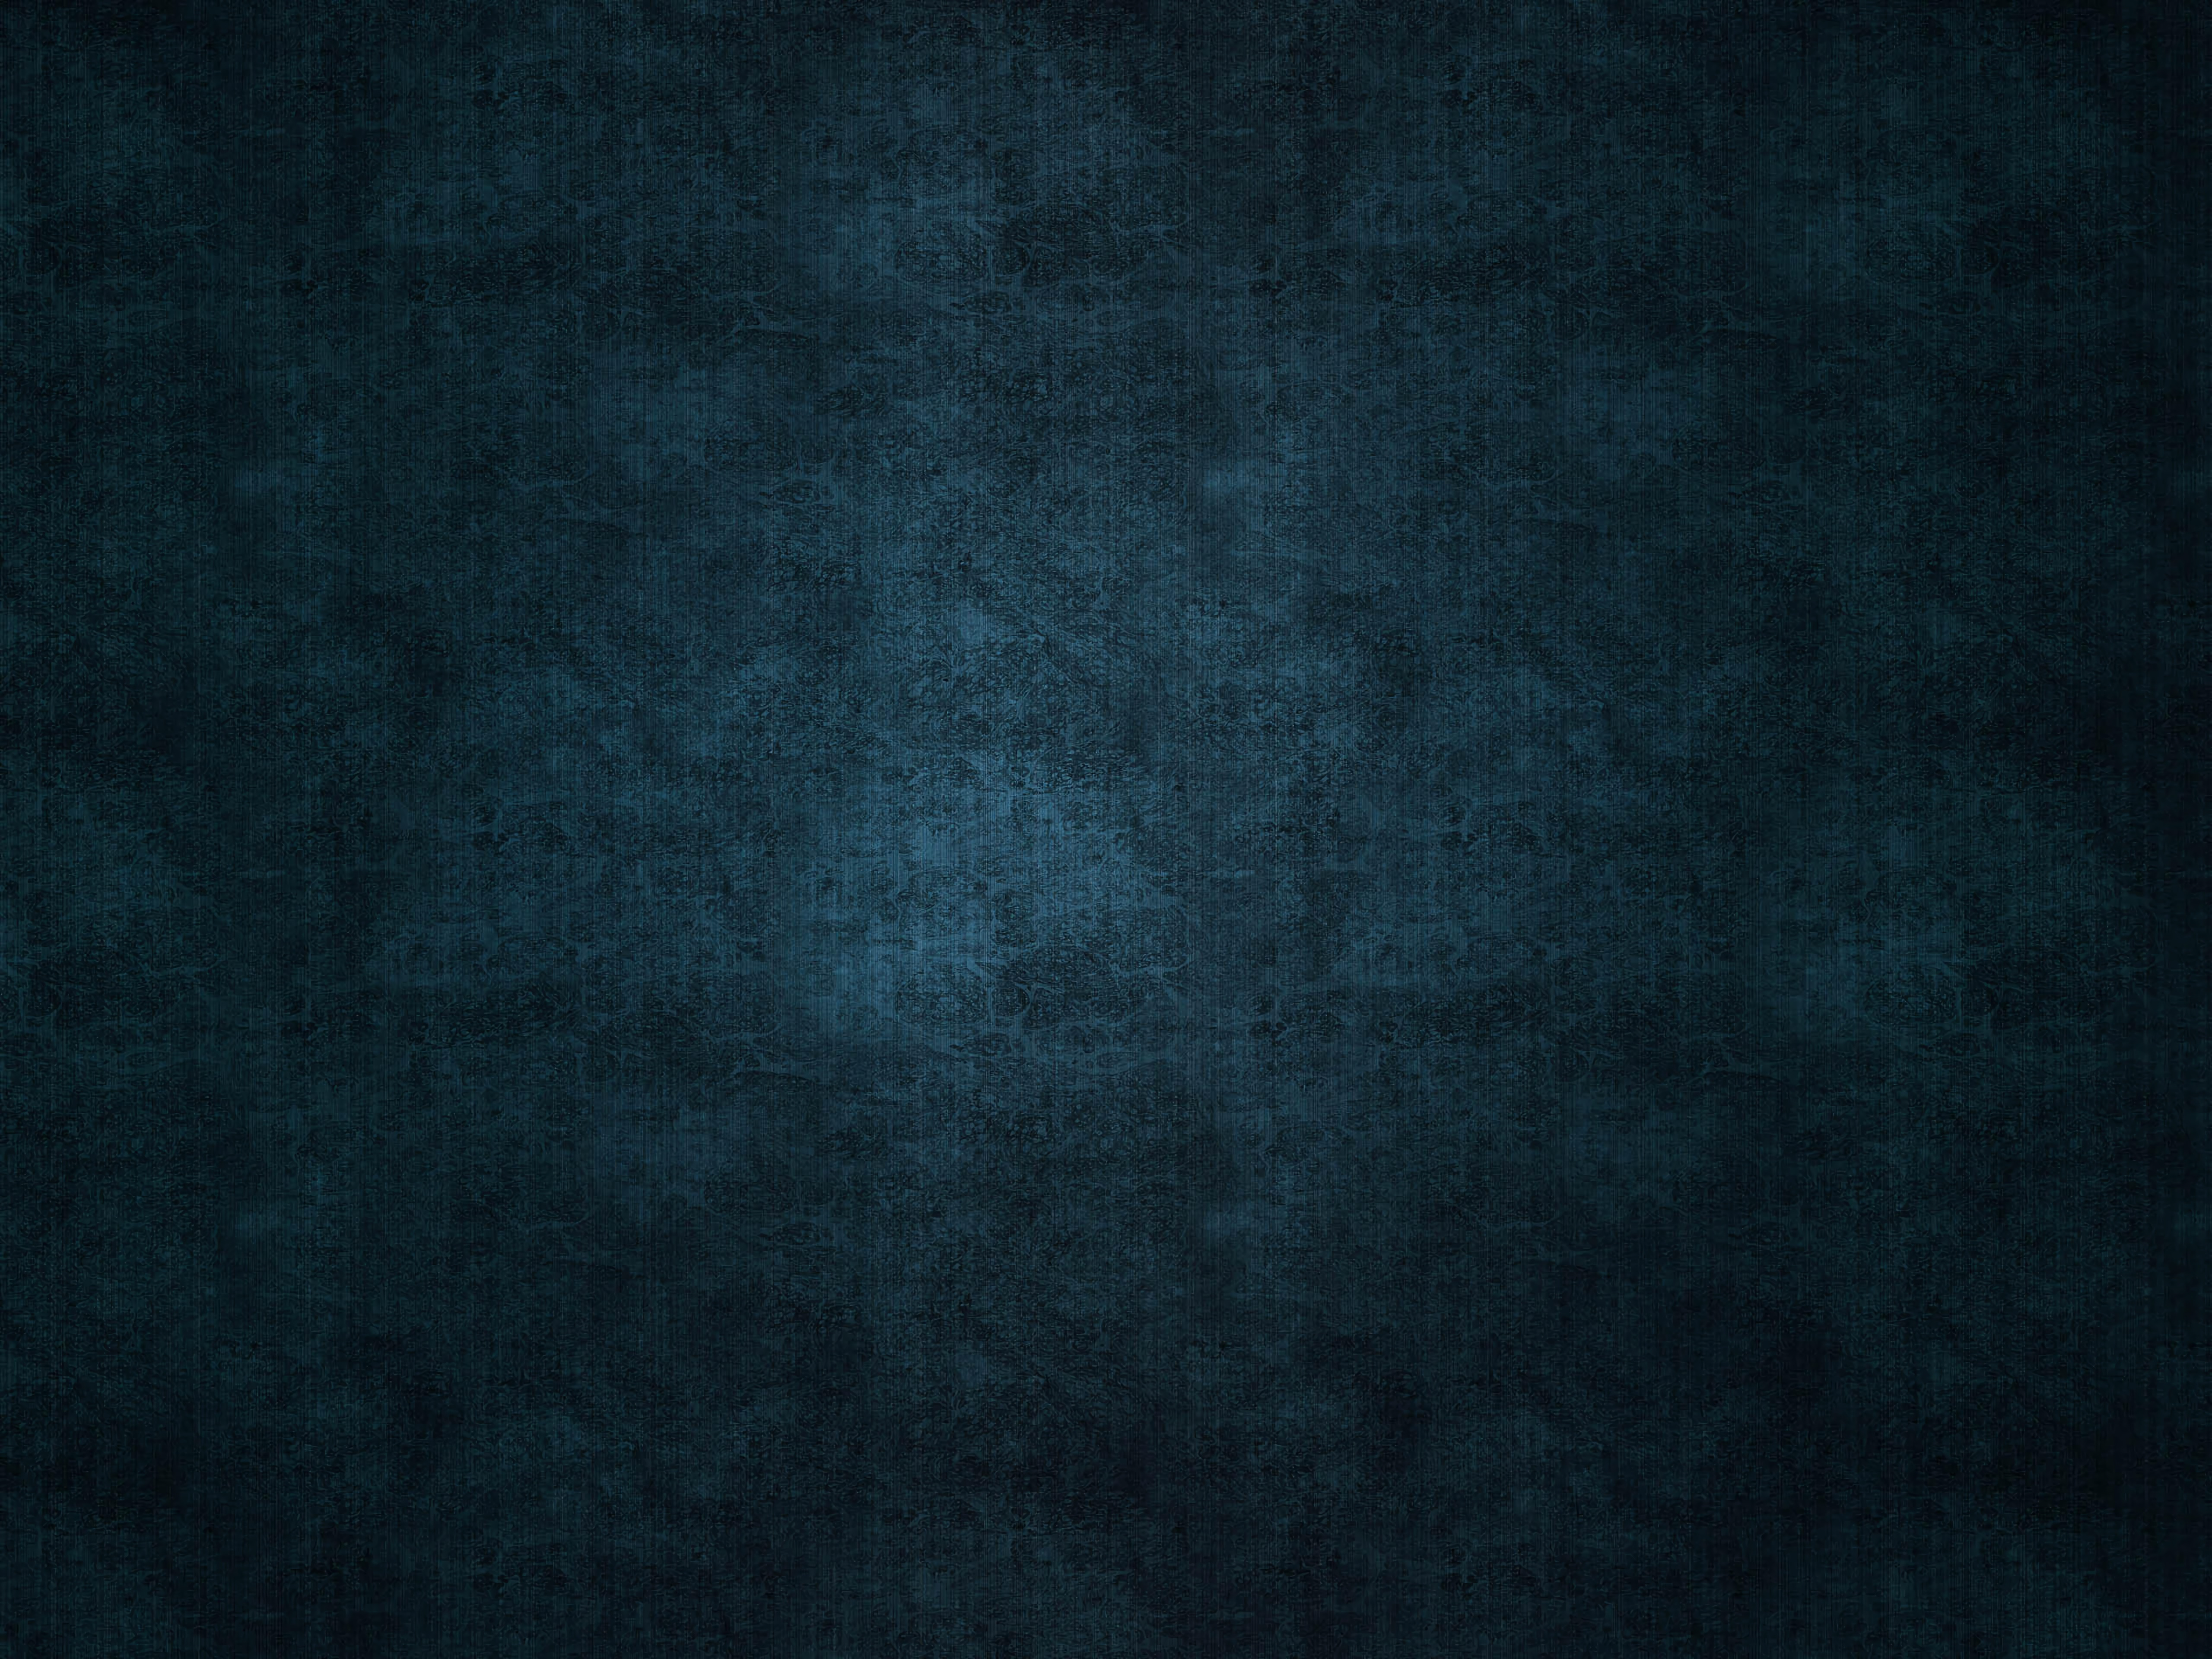 152668 download wallpaper Textures, Dark, Texture, Surface, Stains, Spots screensavers and pictures for free